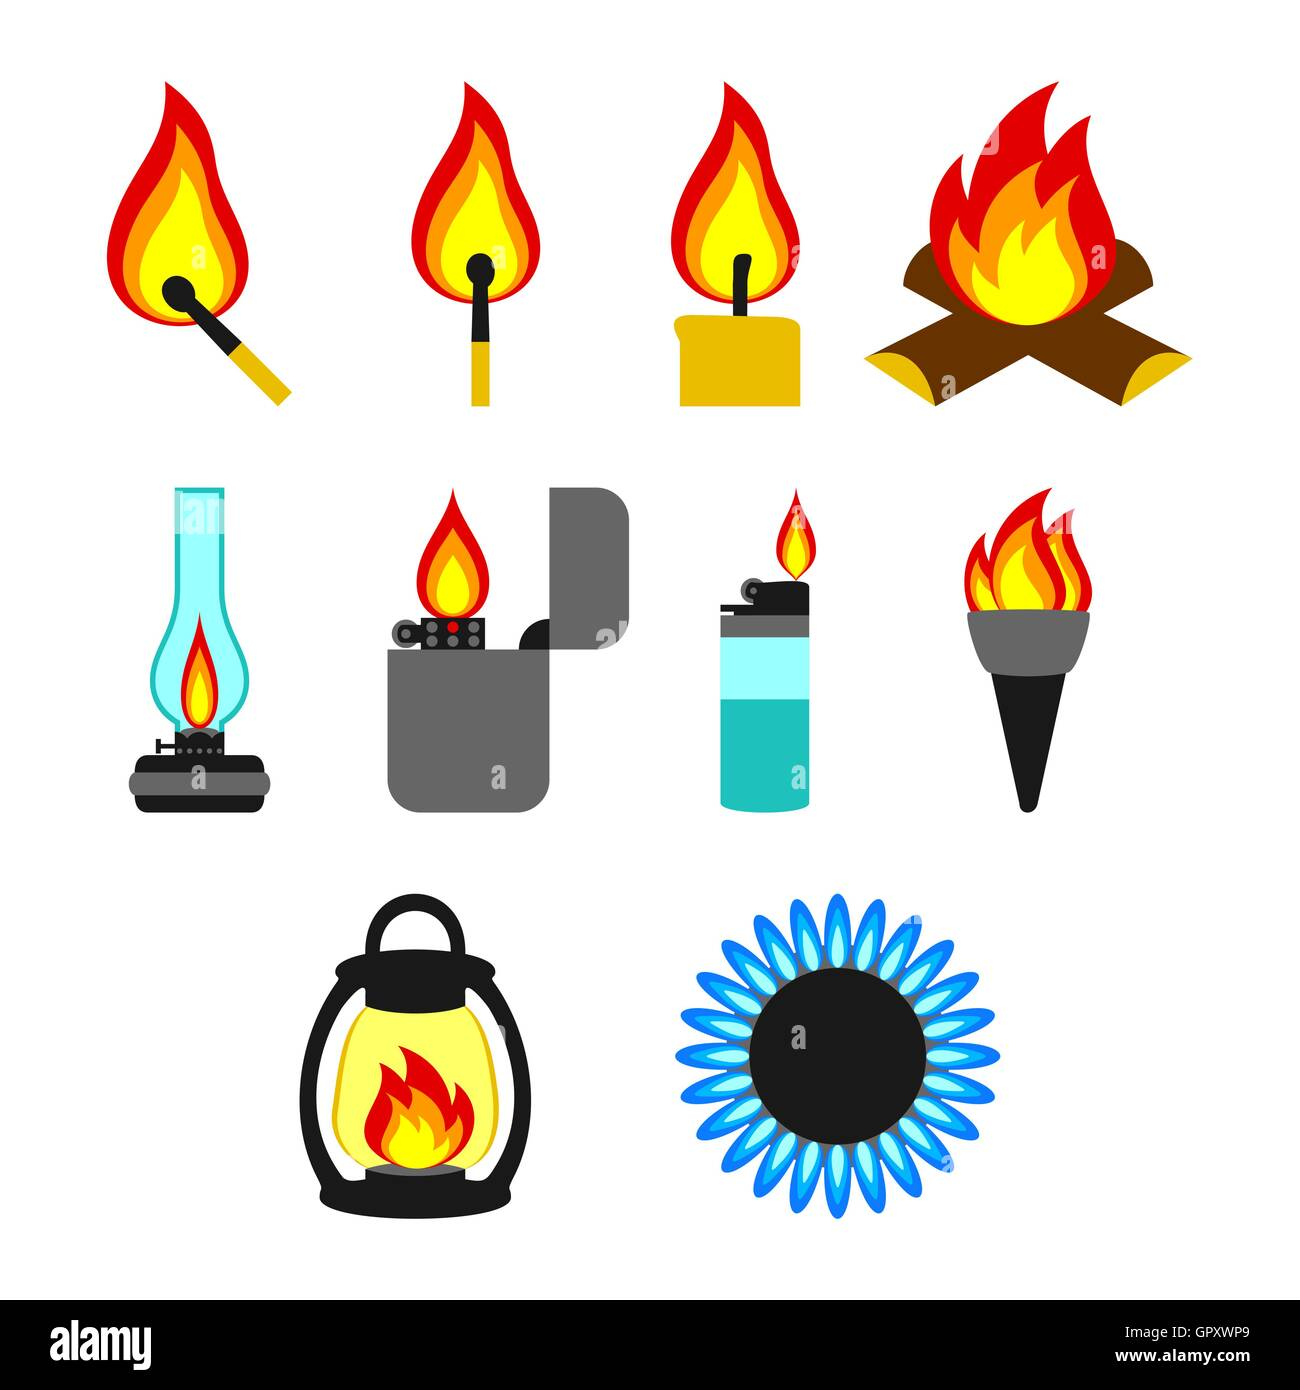 Objects giving fire - Stock Image